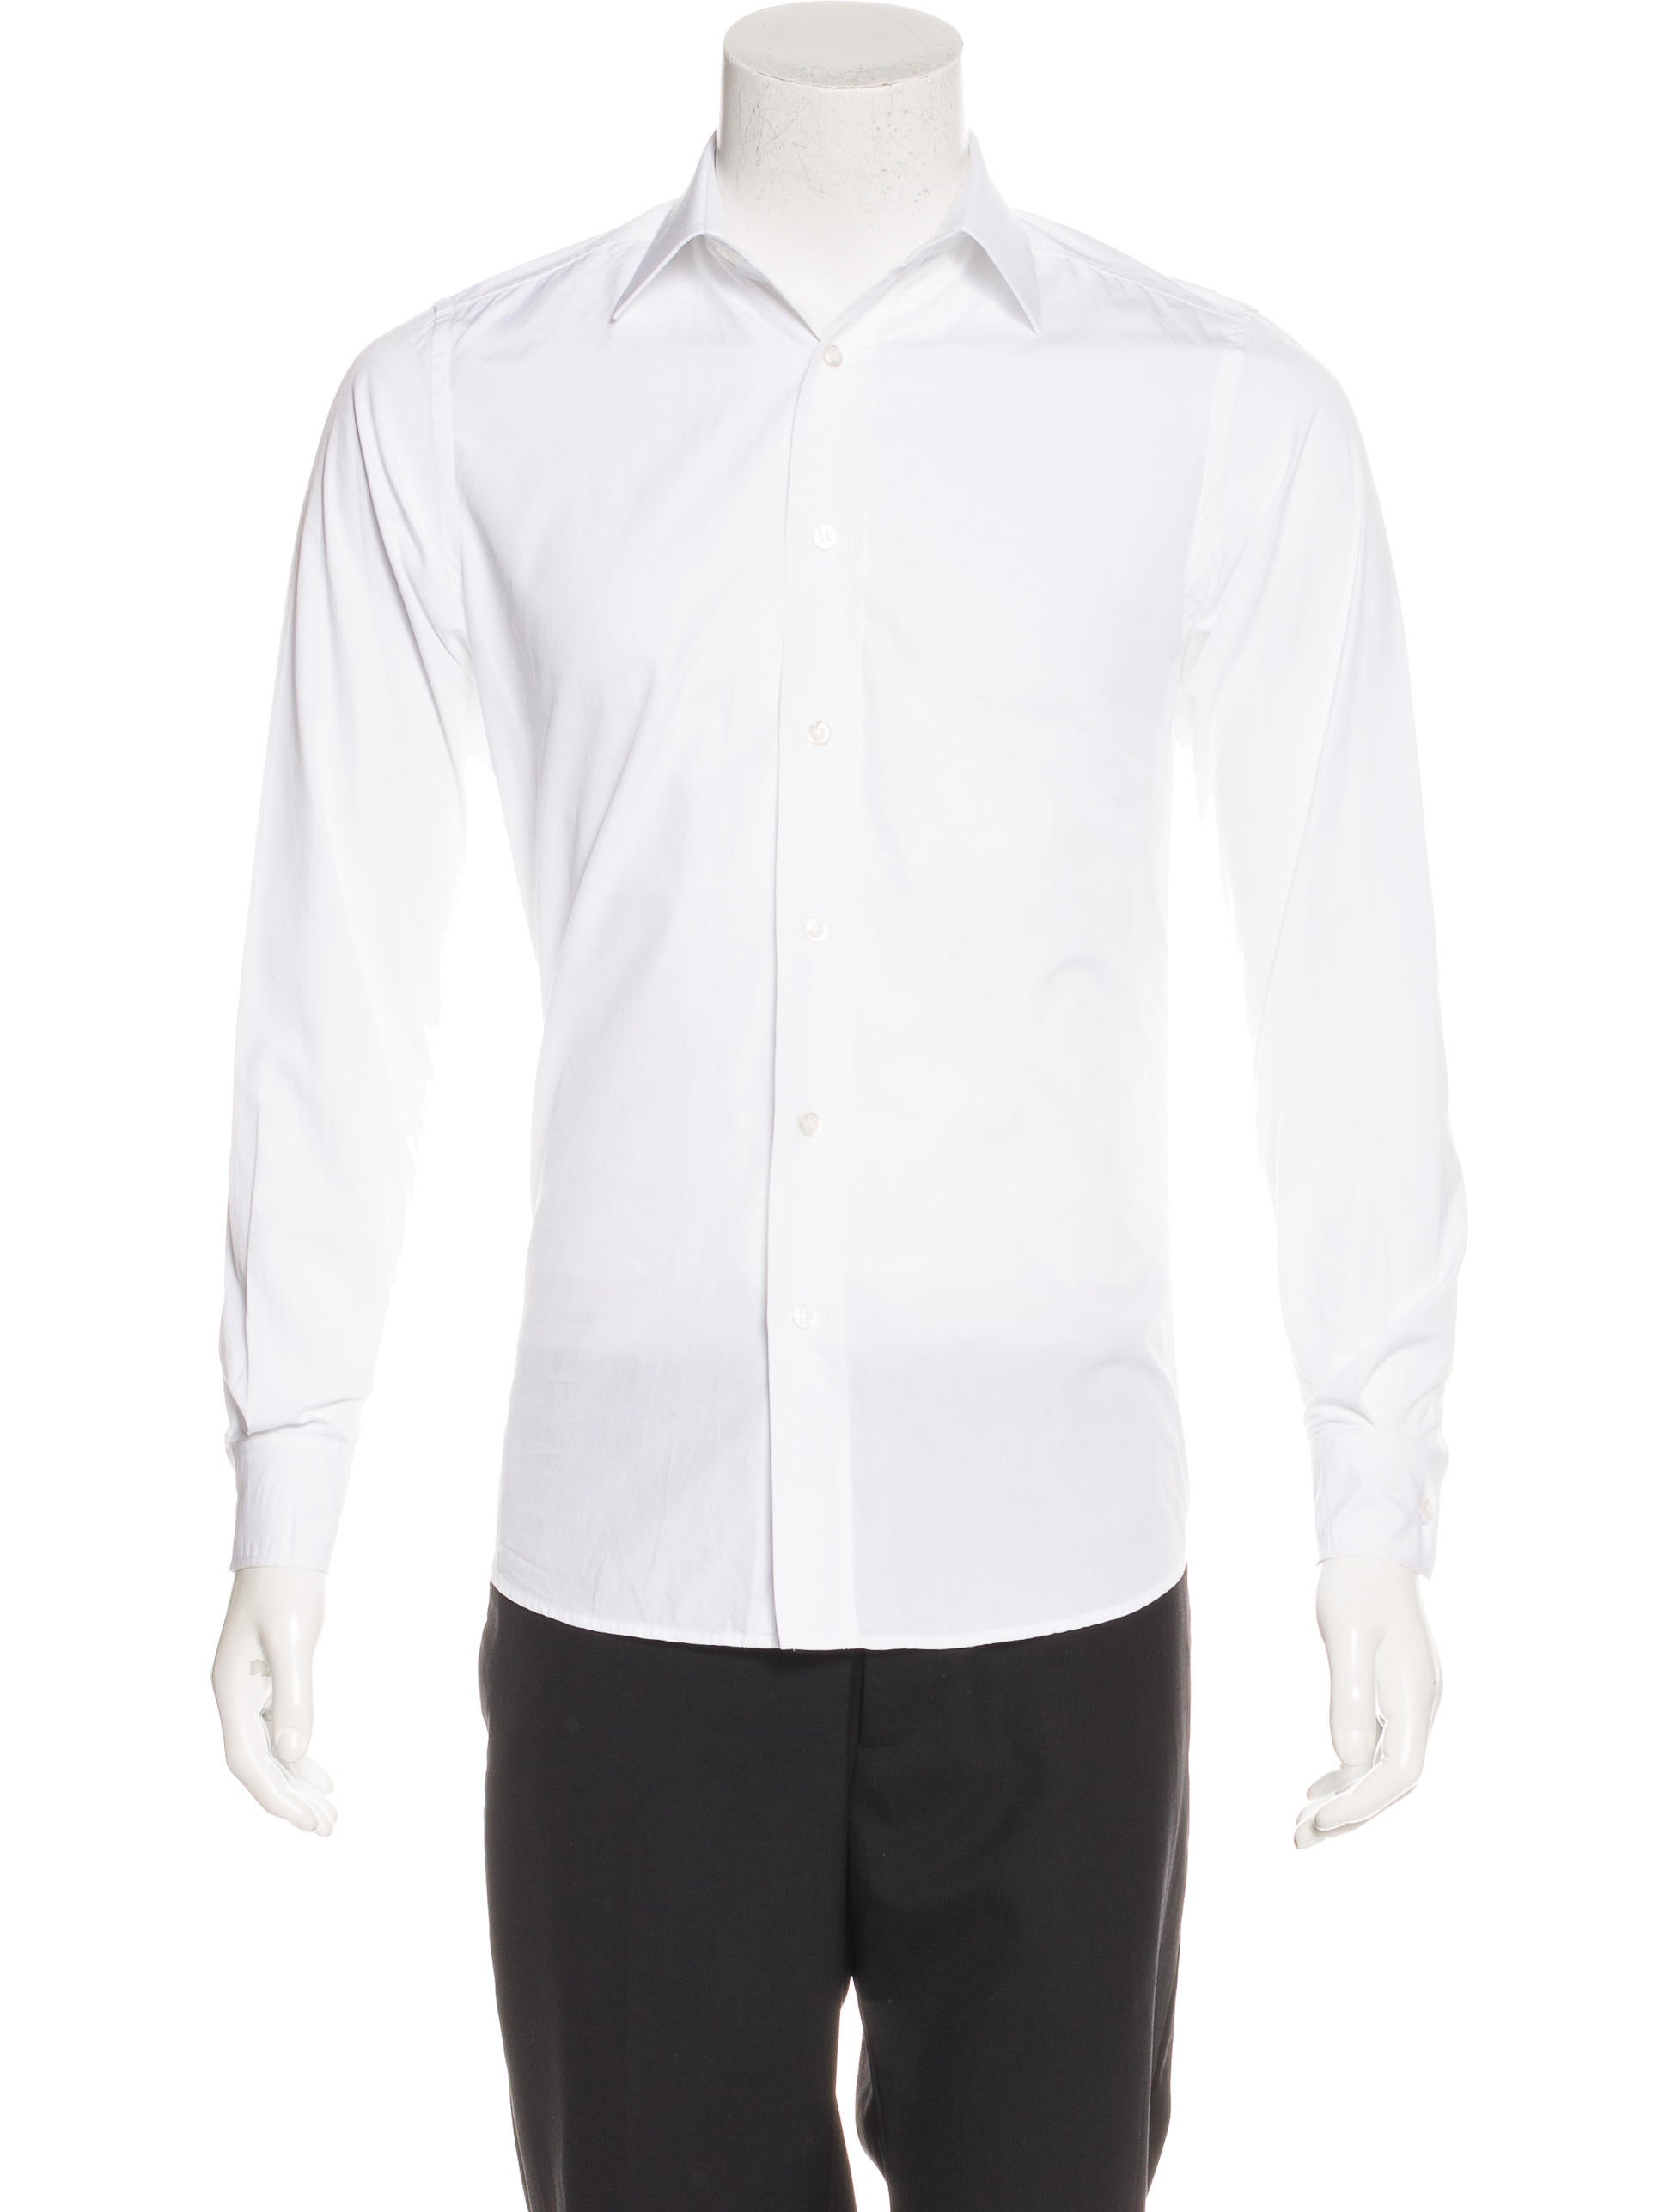 Yves Saint Laurent Woven Button Up Shirt Clothing